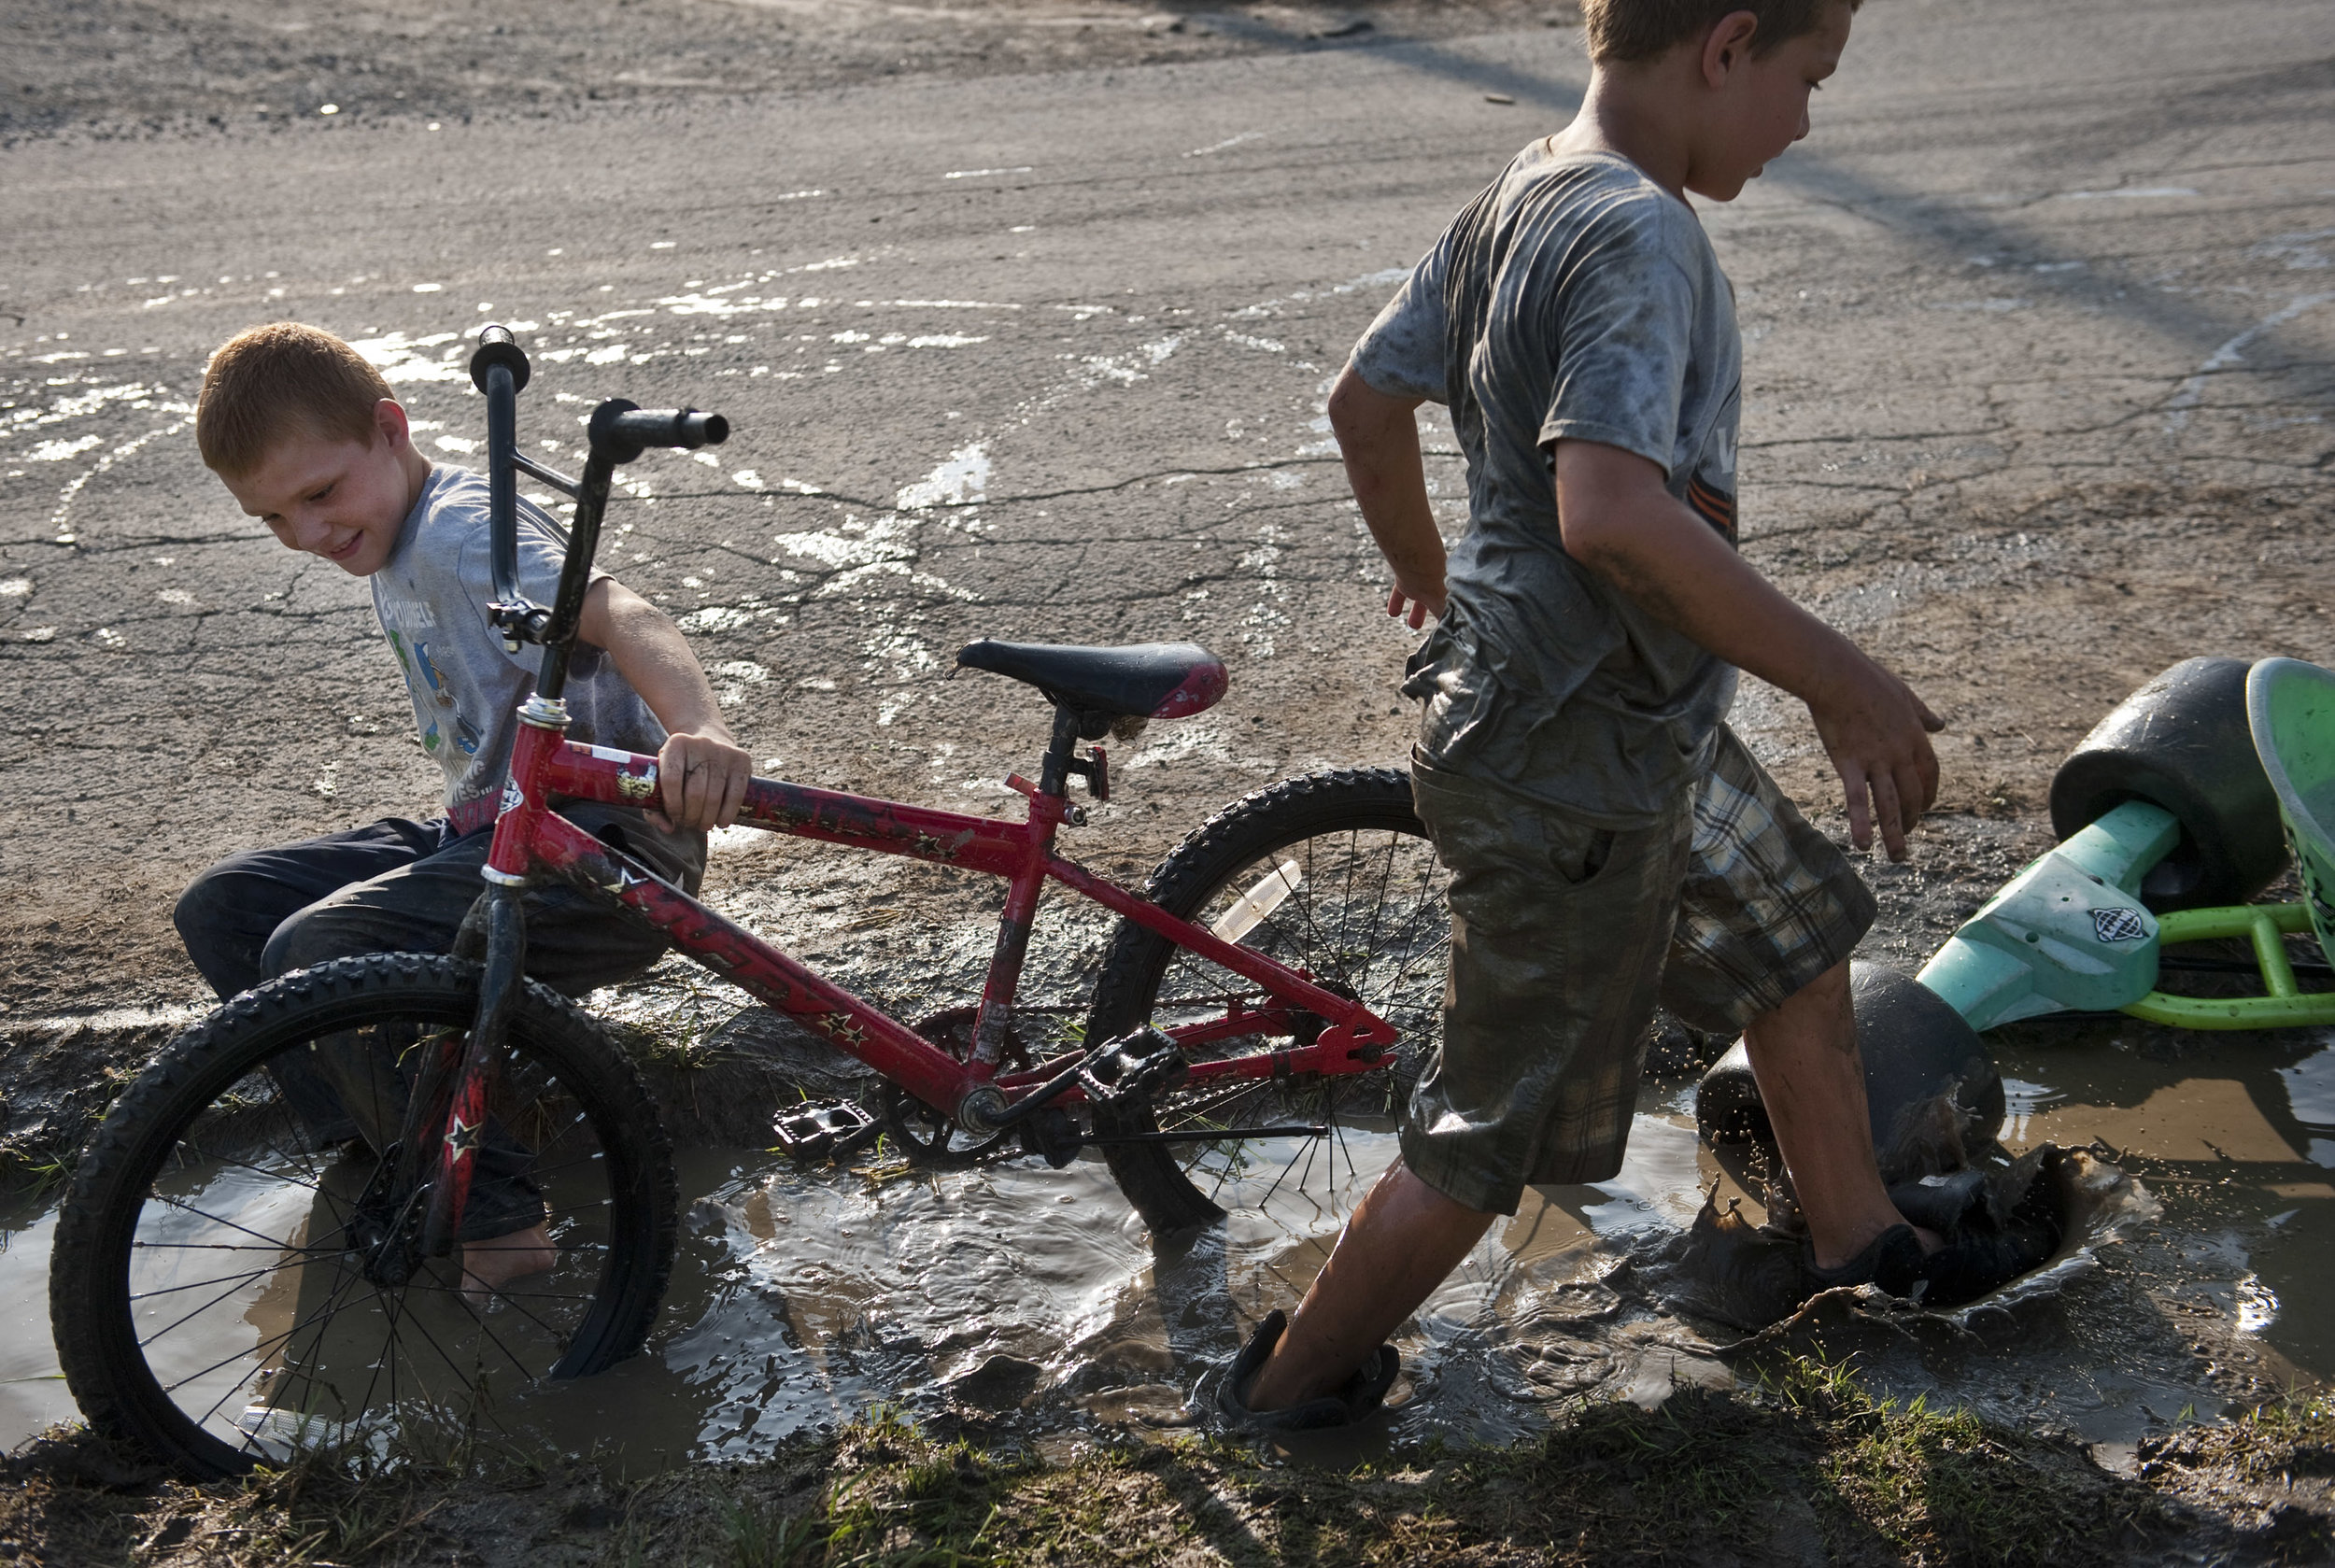 """Cammeron Bluey, 9 (left), plays with his brother Logan, 8, in the mud with their bikes while watching a District 31 American Legion baseball playoff game on Thursday, July 7, 2016 in Whitney. The brothers, who dubbed themselves """"The Dirtiest Kids in Whitney,"""" often play rough. """"He knocked my tooth out and when I got paid by the tooth fairy, I gave him 50 cents,"""" Cammeron said smartly. """"I tell him to do it. We've done it several times."""""""